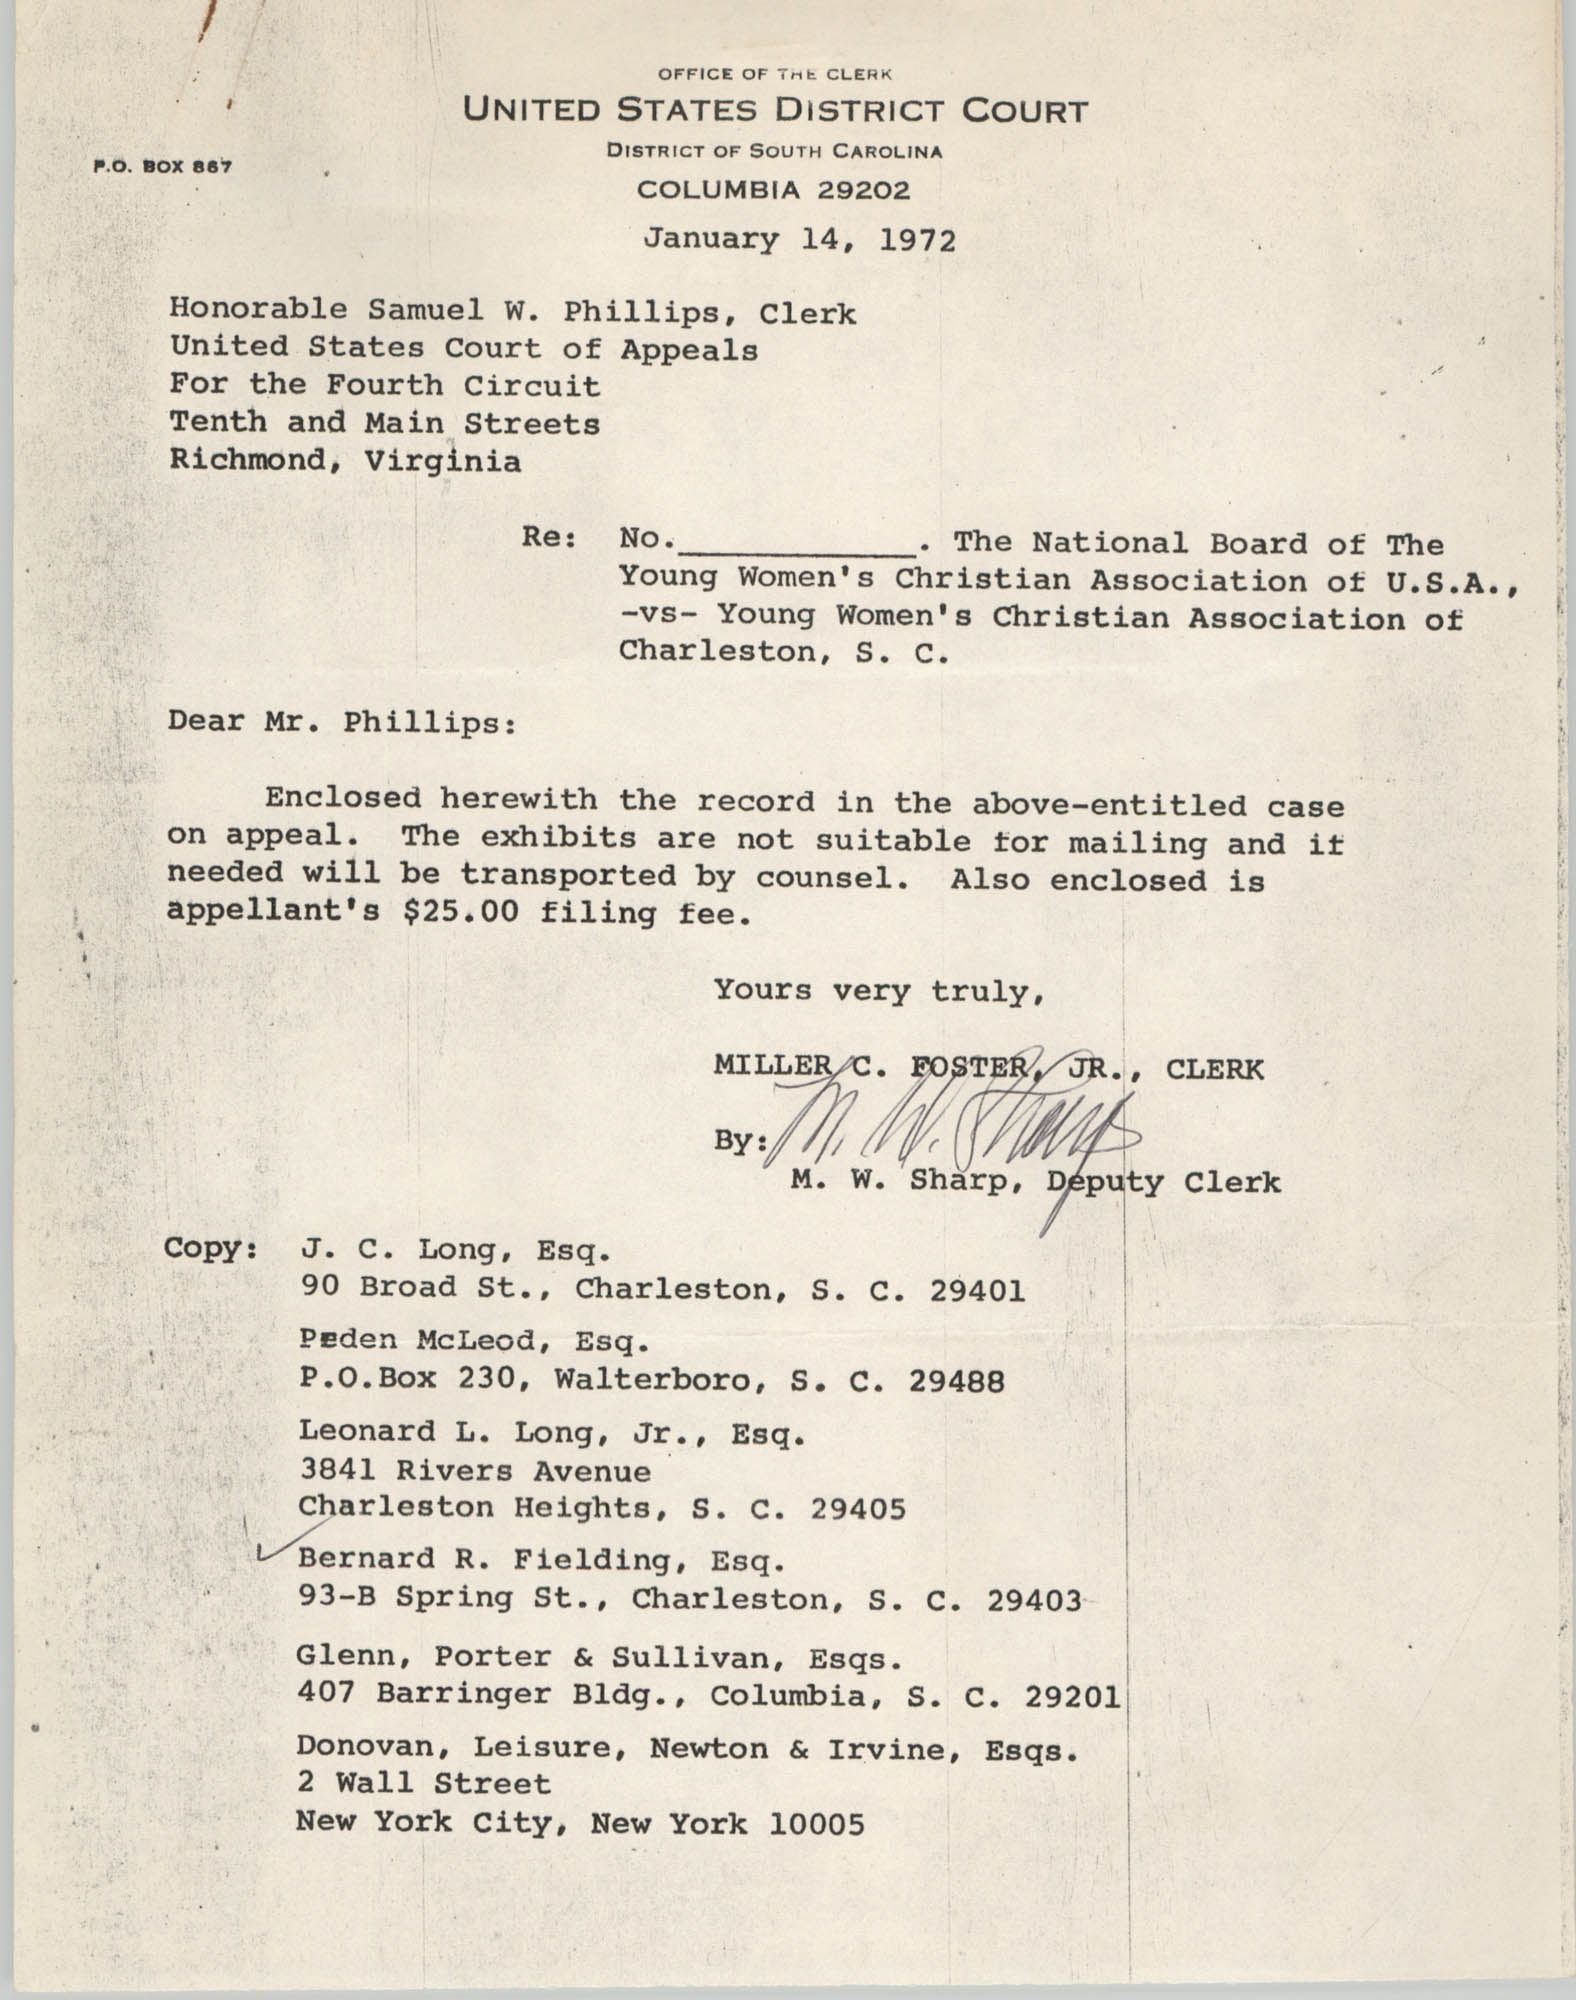 Letter from Miller C. Foster, Jr. and M. W. Sharp to Honorable Samuel W. Phillips, January 14, 1972